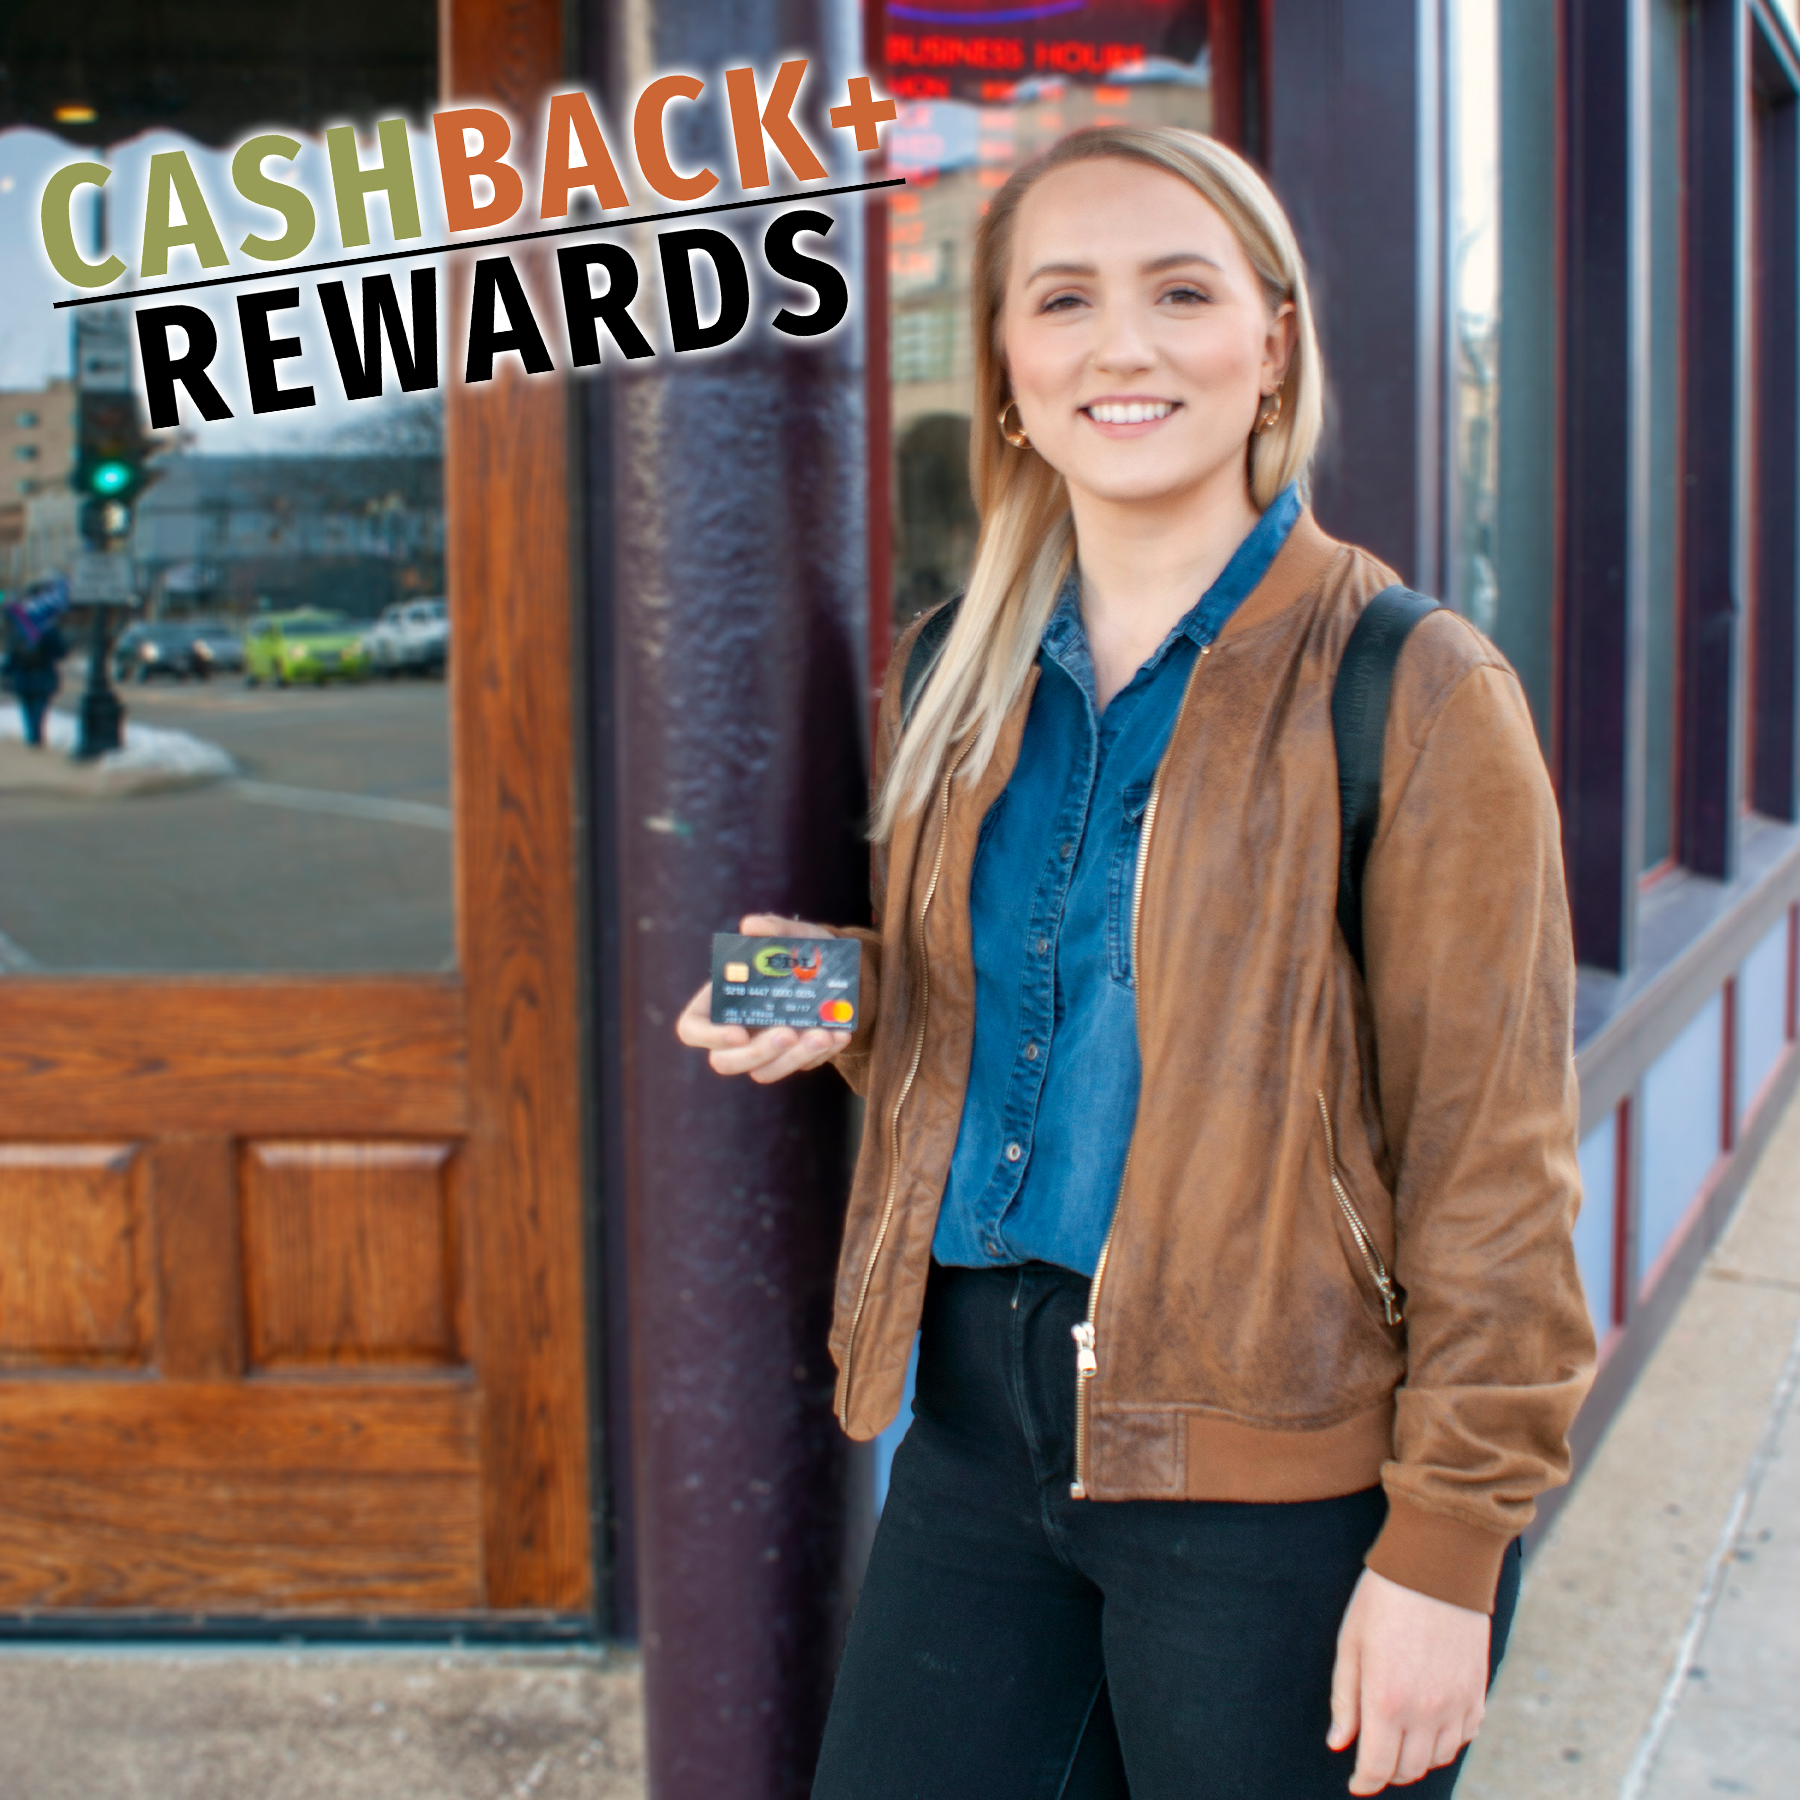 cashback+ rewards